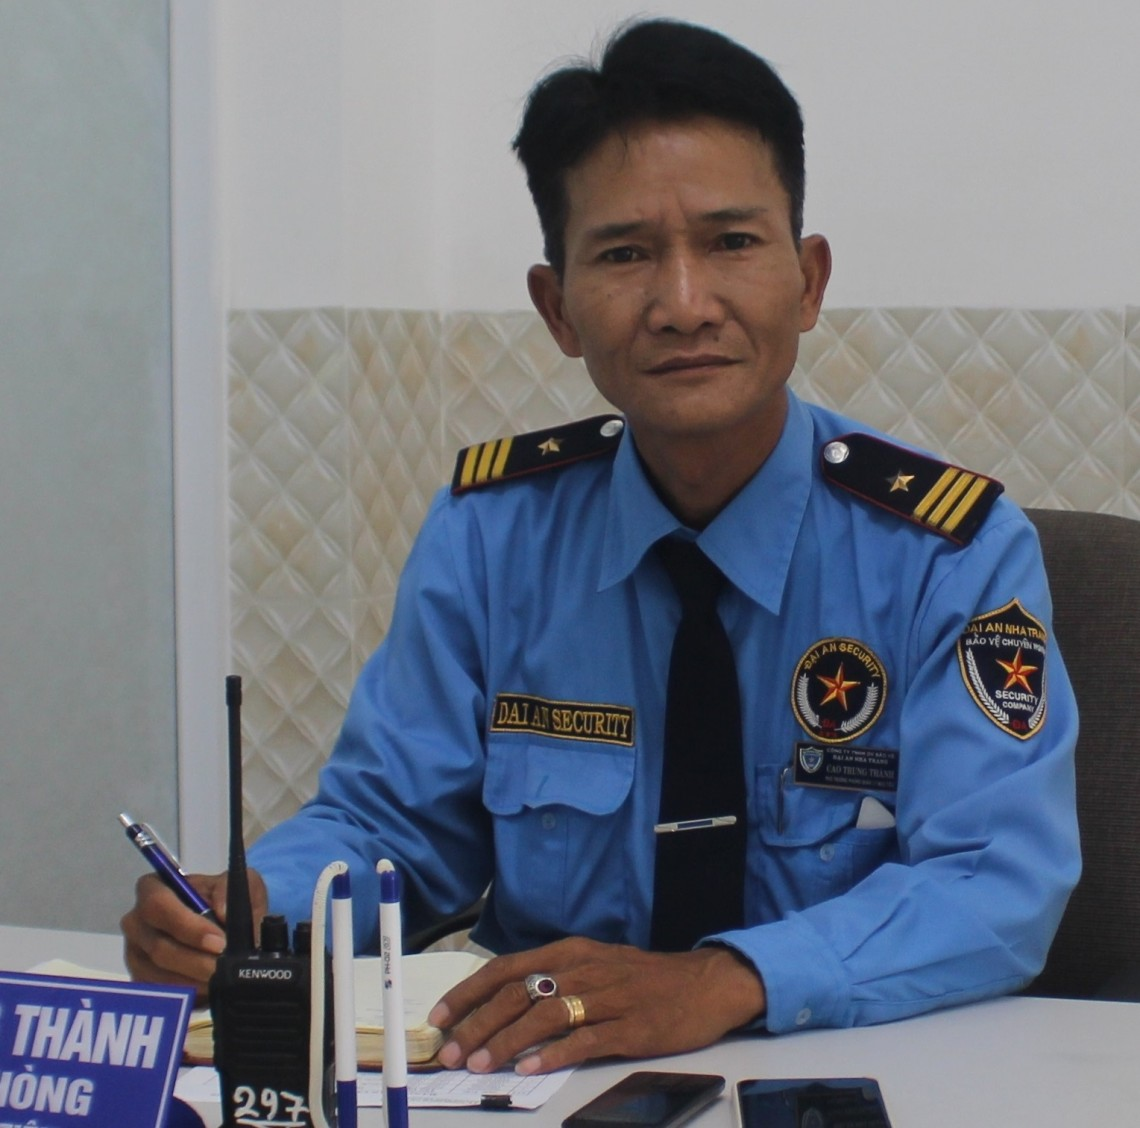 Cao Trung Thành, Head of Sites Management - Dai An Nha Trang Security Service Company Ltd